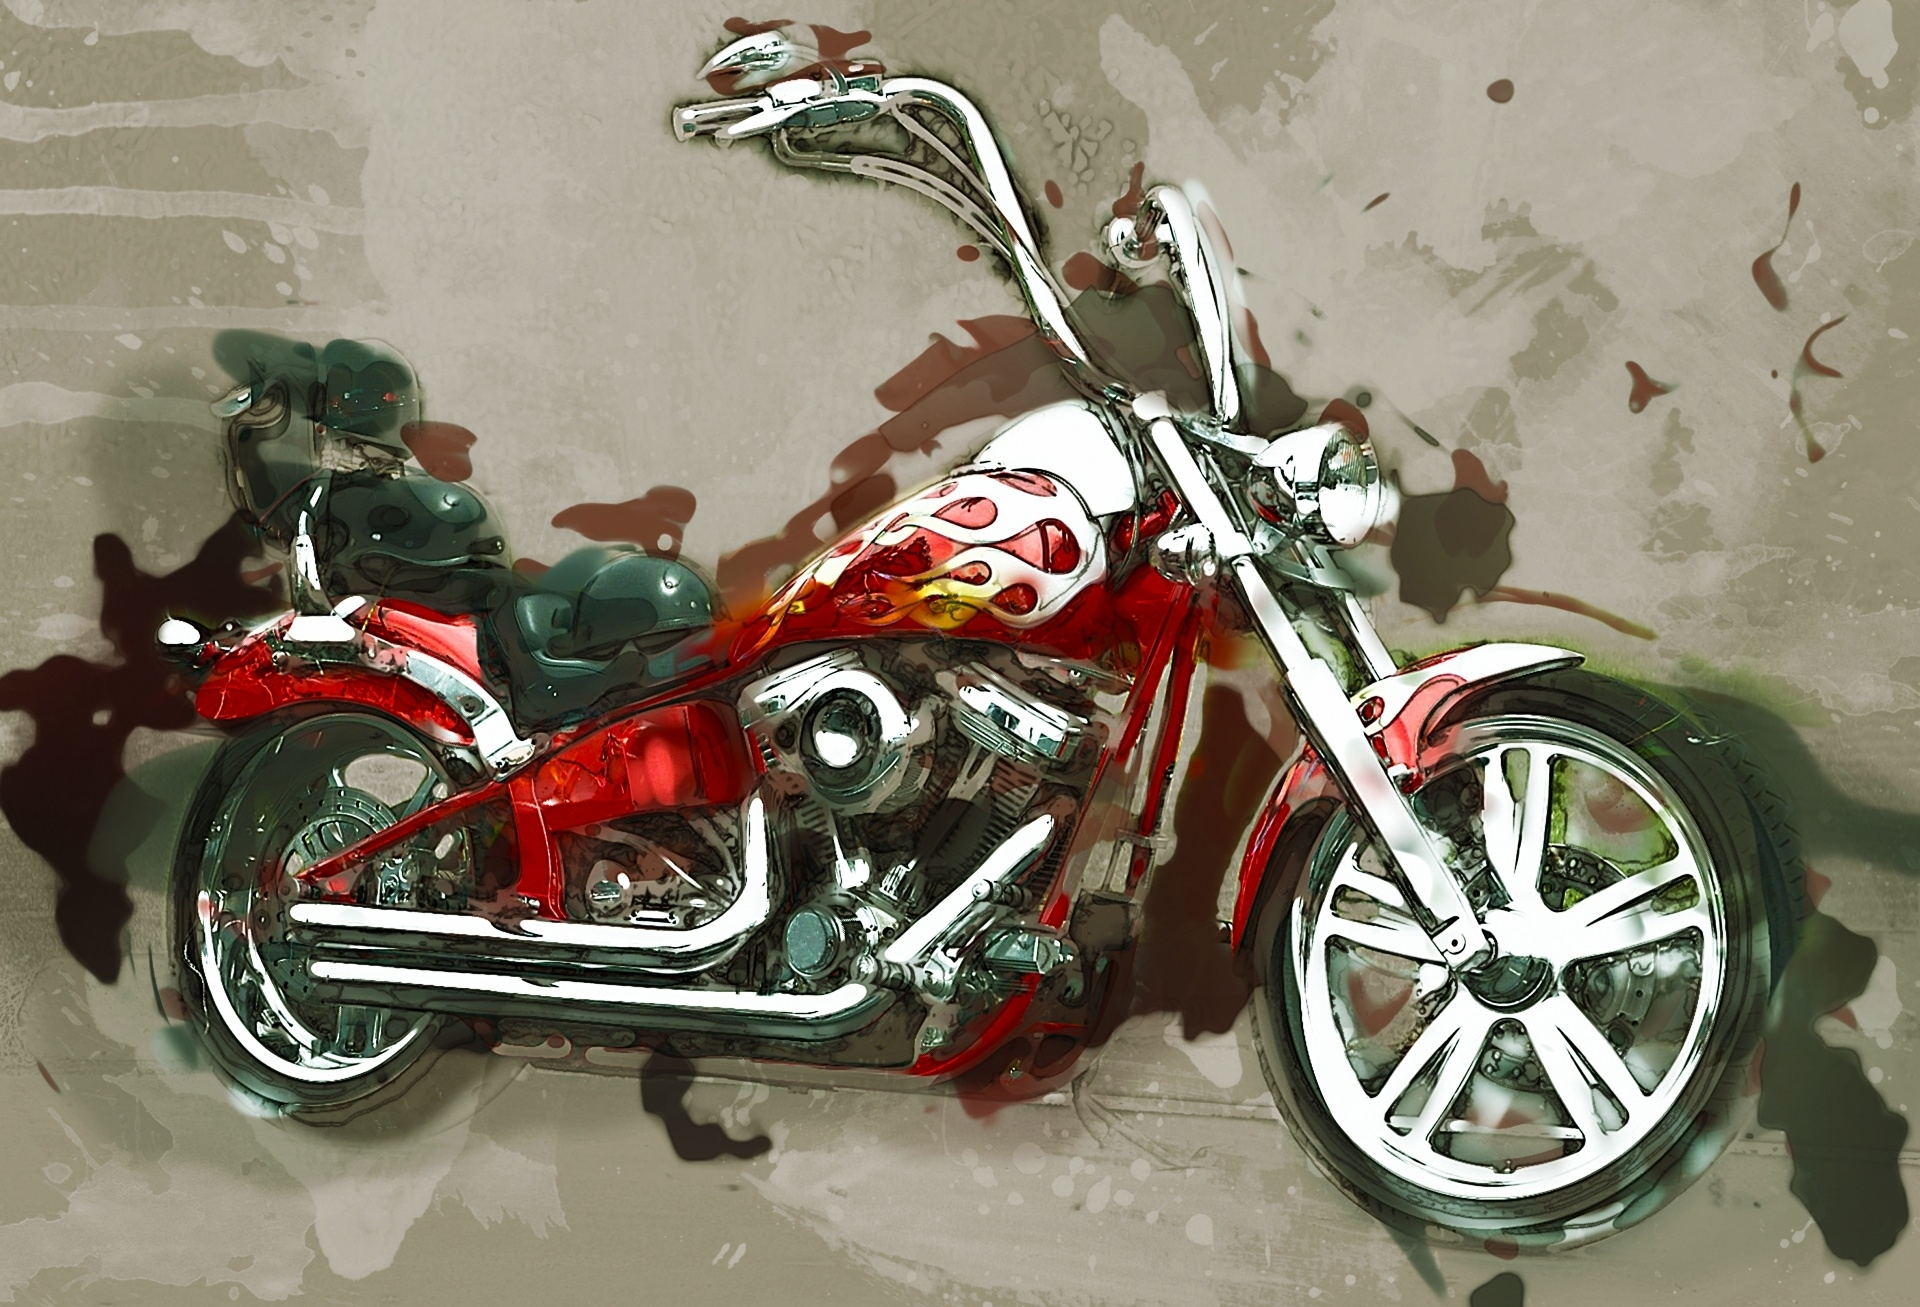 Motorcycle Wall Art Free Stock Photo – Public Domain Pictures Regarding Most Up To Date Motorcycle Wall Art (View 16 of 20)